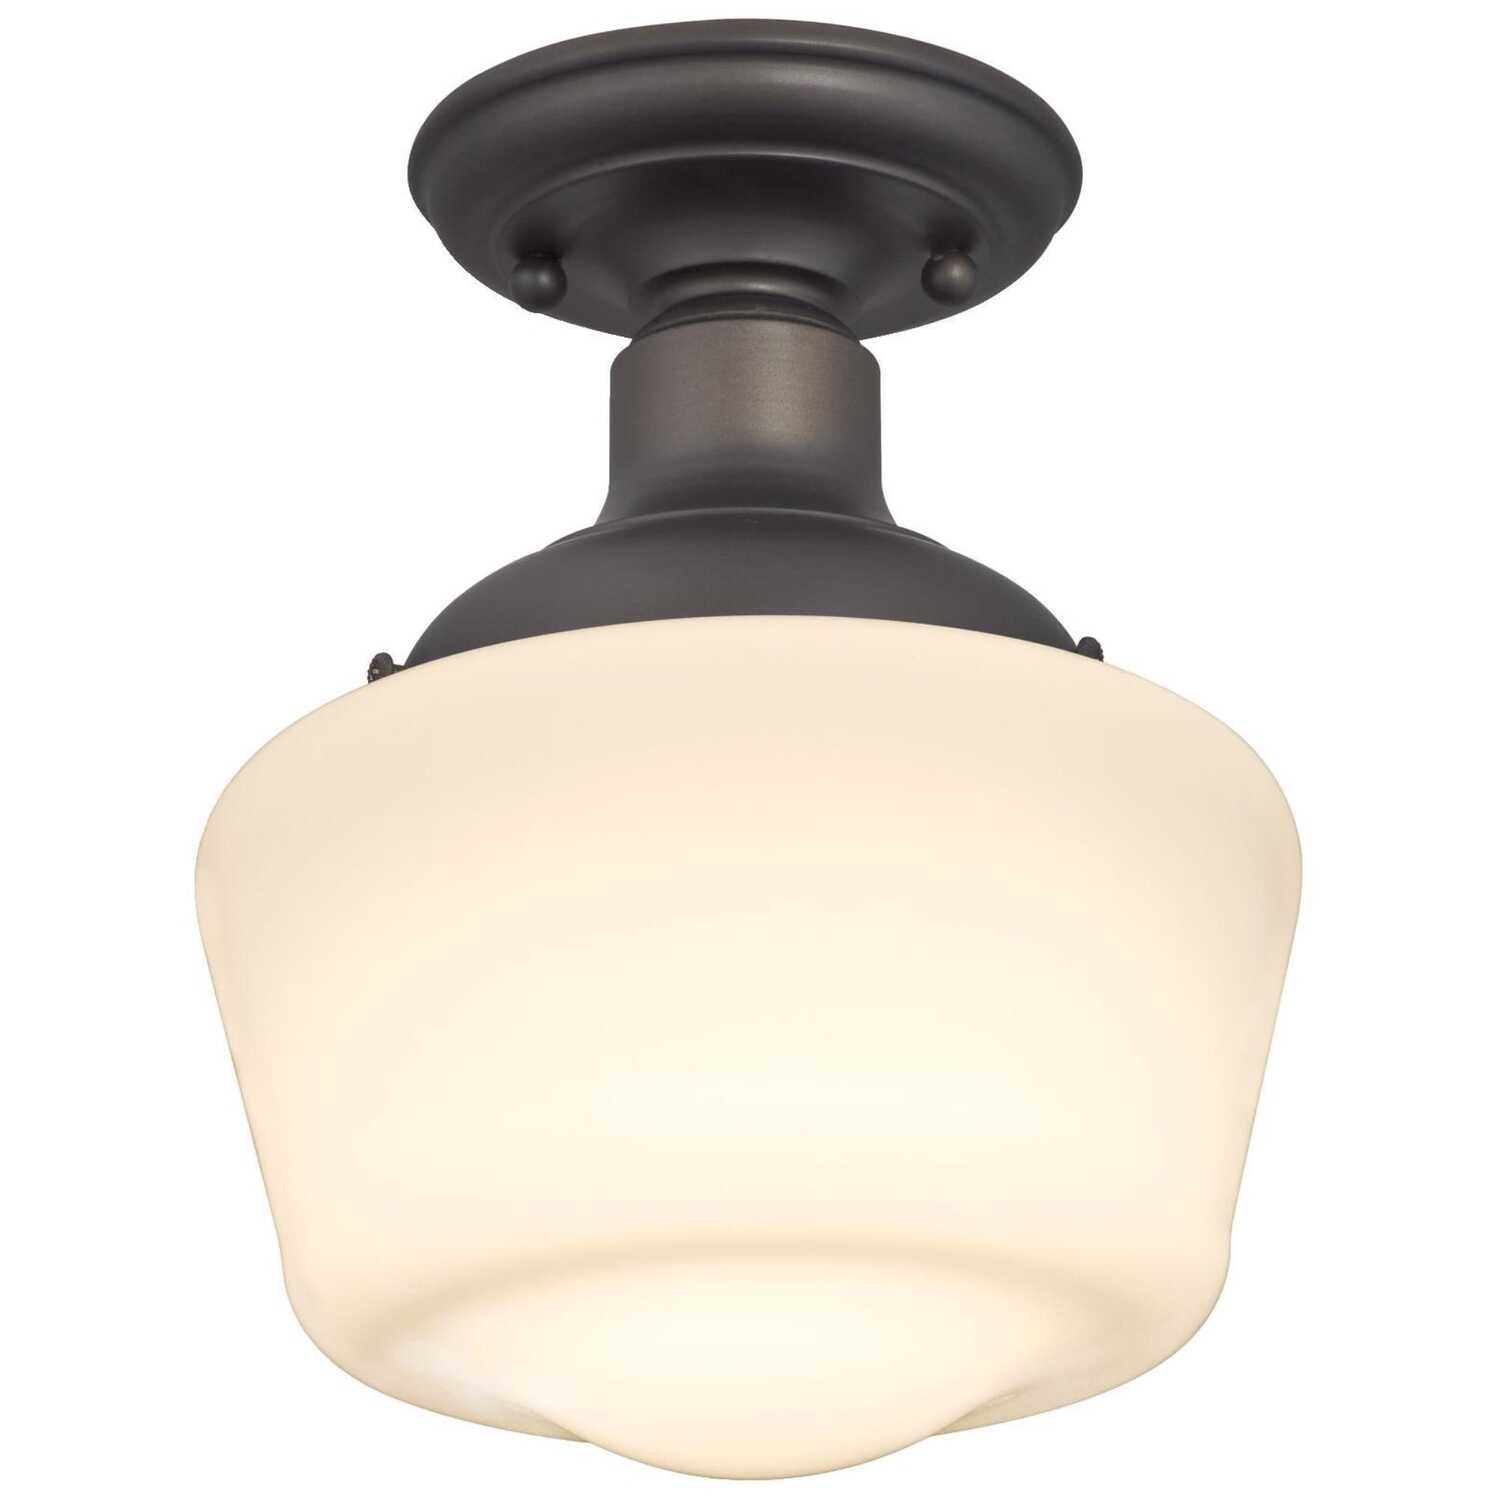 Westinghouse  Scholar  7-3/8 in. W x 7.36 in. L x 9-1/16 in. H Ceiling Light